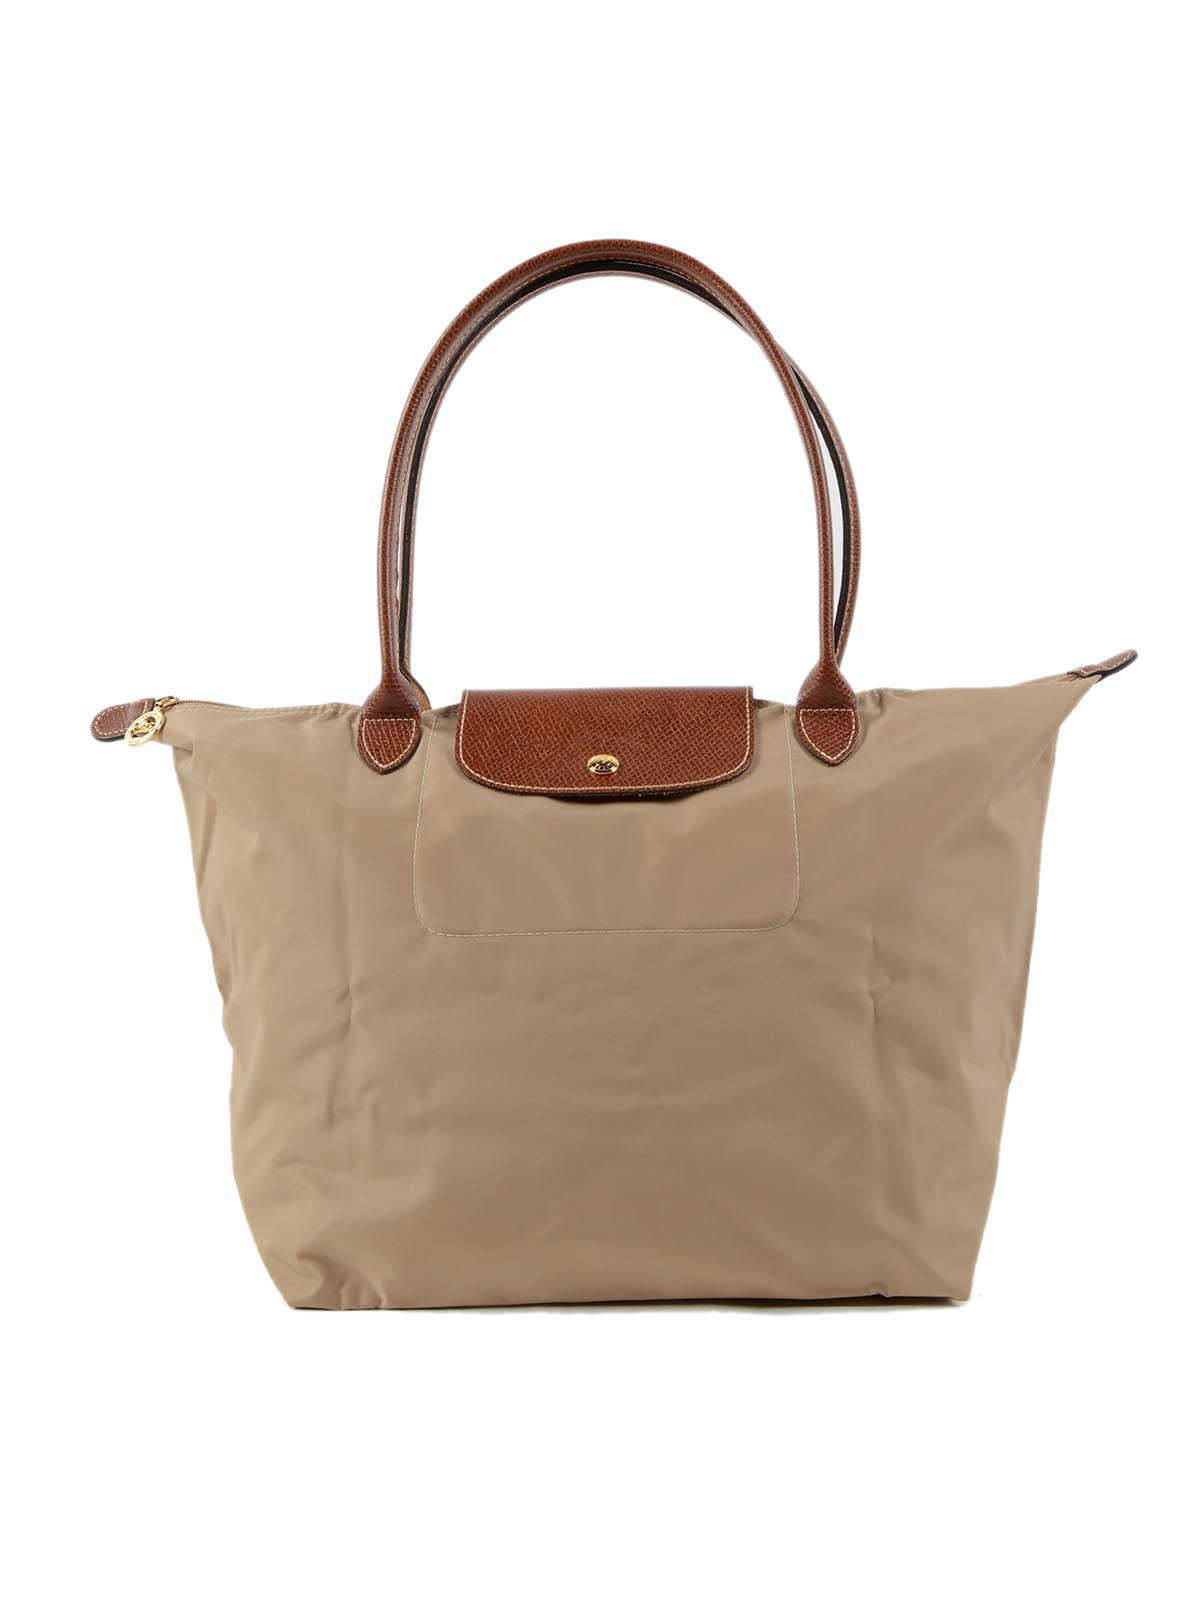 58f8f1d5ac79 Gallery. Previously sold at  Spinnaker · Women s Longchamp Le Pliage ...